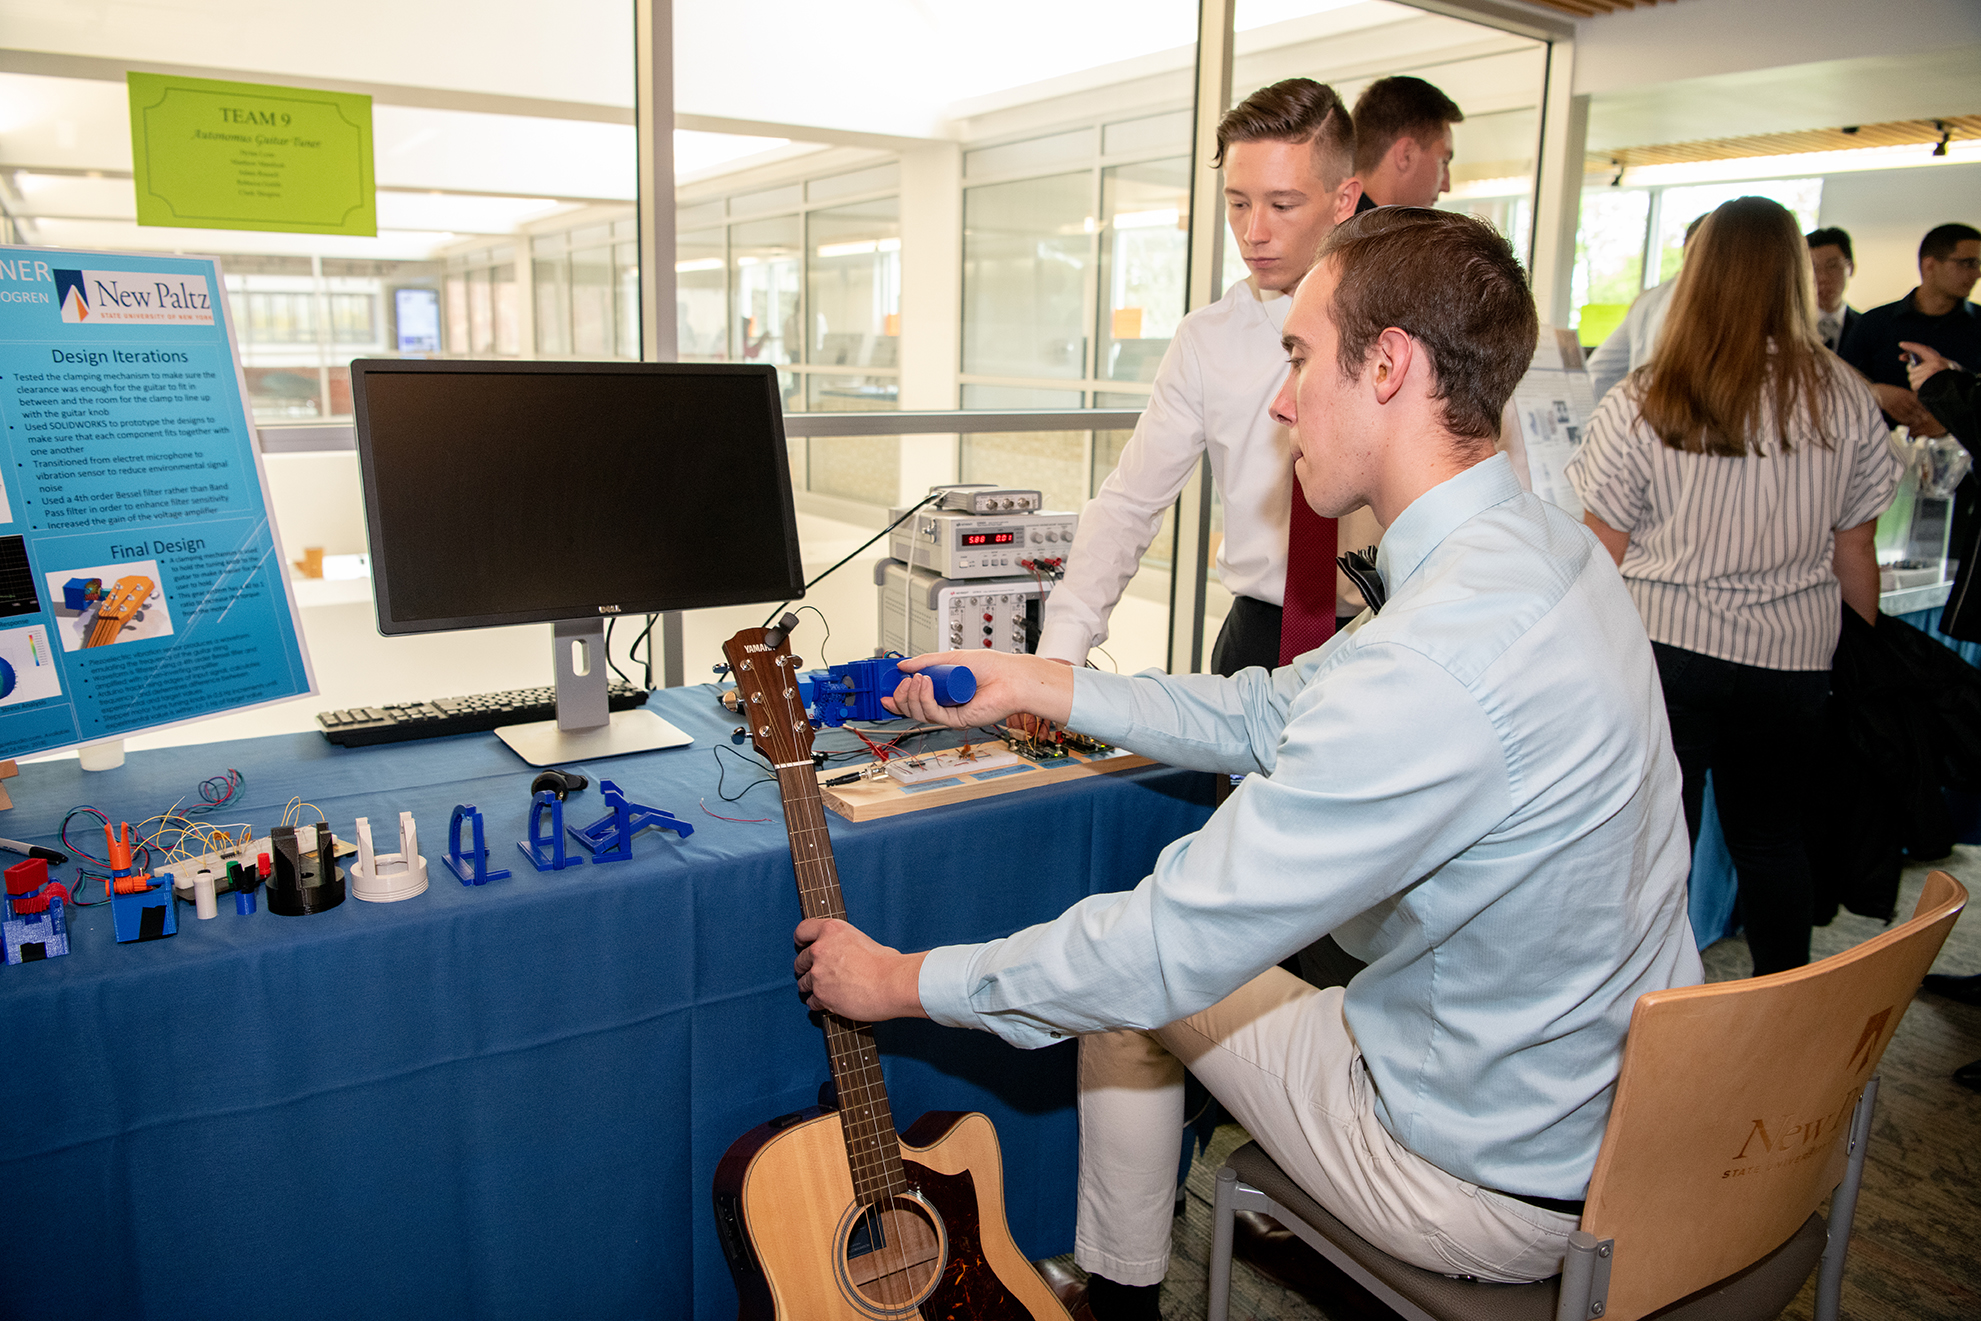 More Than 70 Students Showcase Capstone Projects At Largest Engineering Design Expo Yet Suny New Paltz News